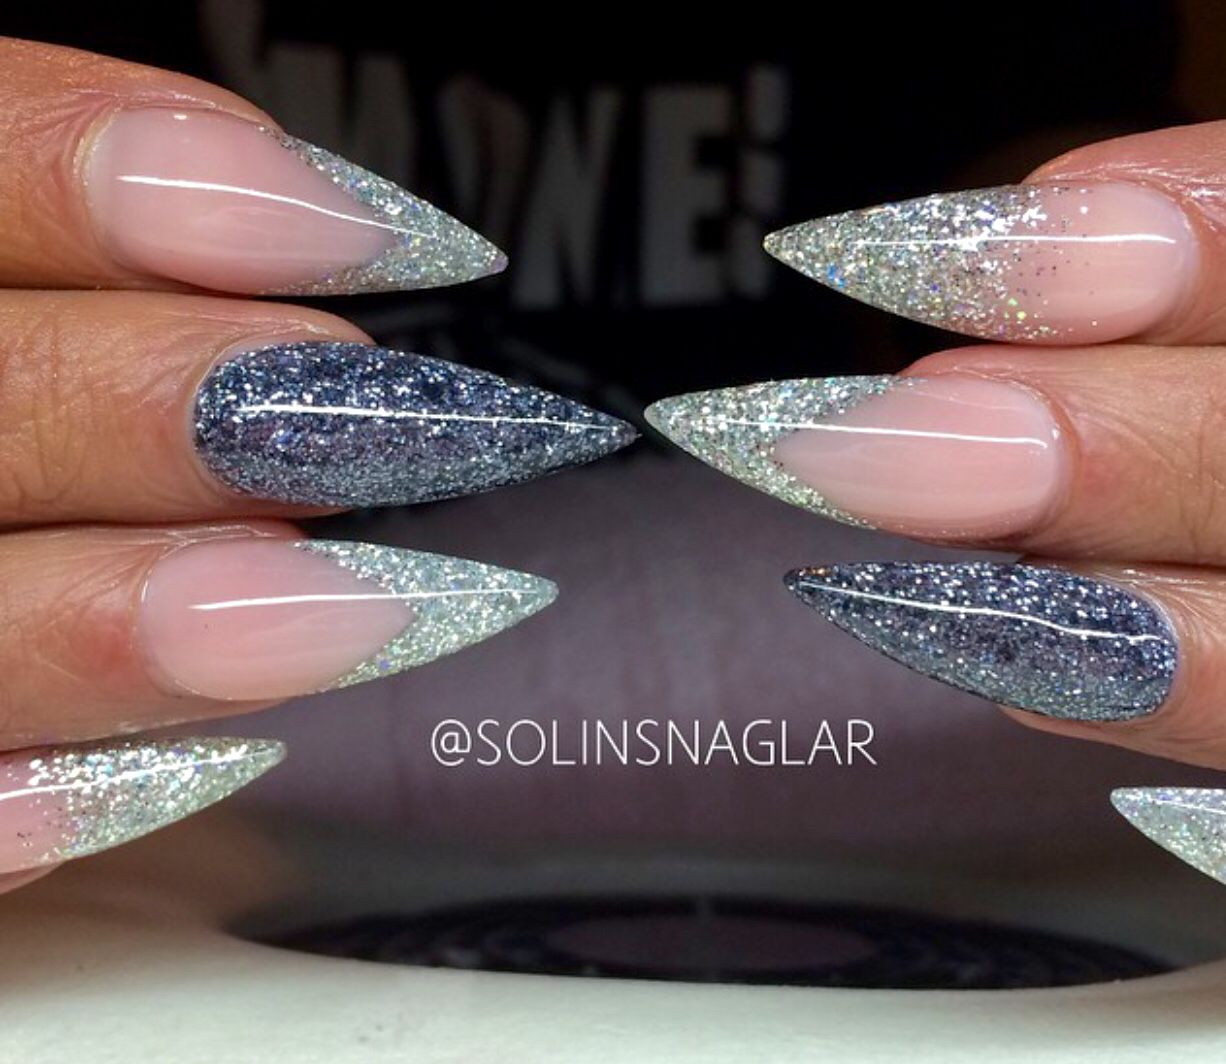 Pin by Pirvu Diana on modele unghii | Pinterest | Diva nails, Nails ...